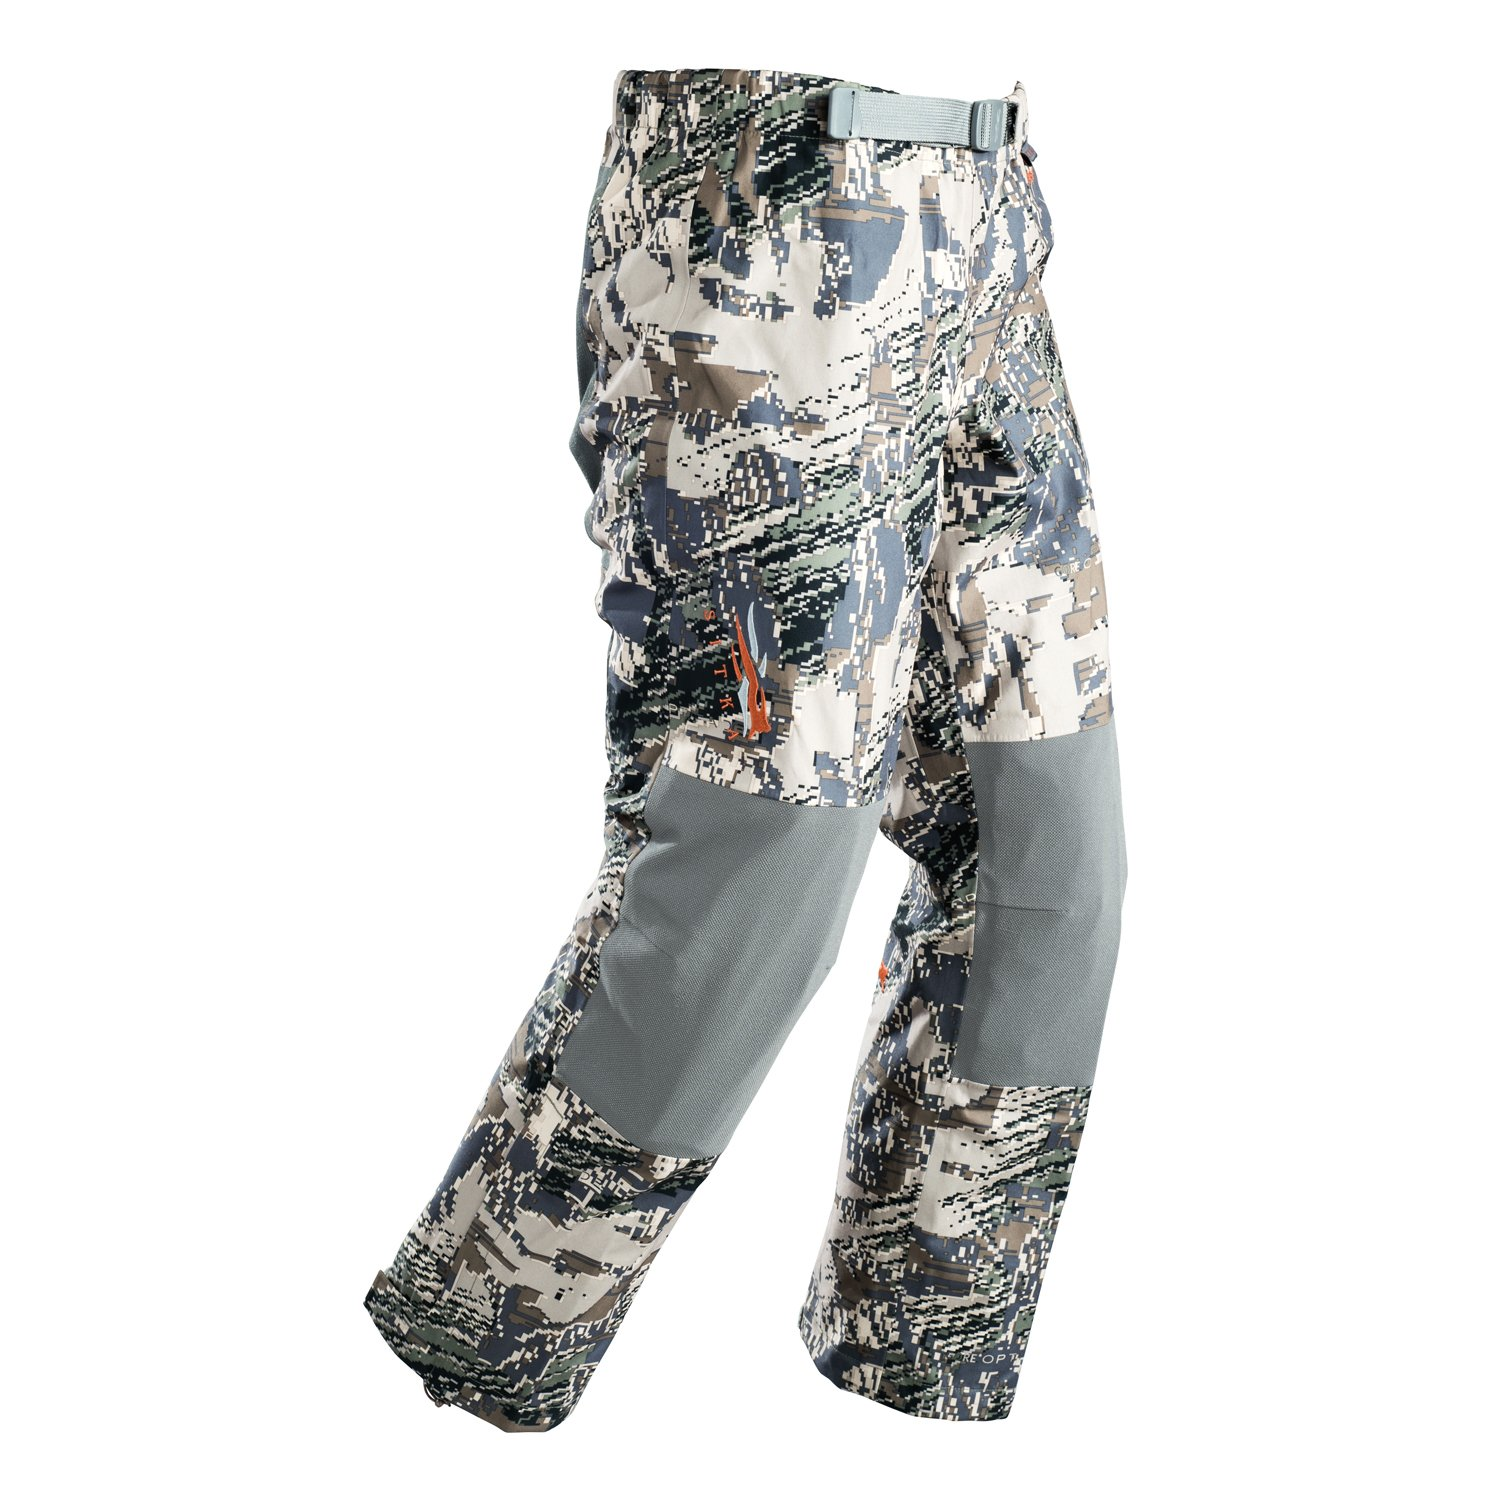 SITKA Gear Cyclone Pant Optifade Open Country Youth Large - Discontinued by SITKA